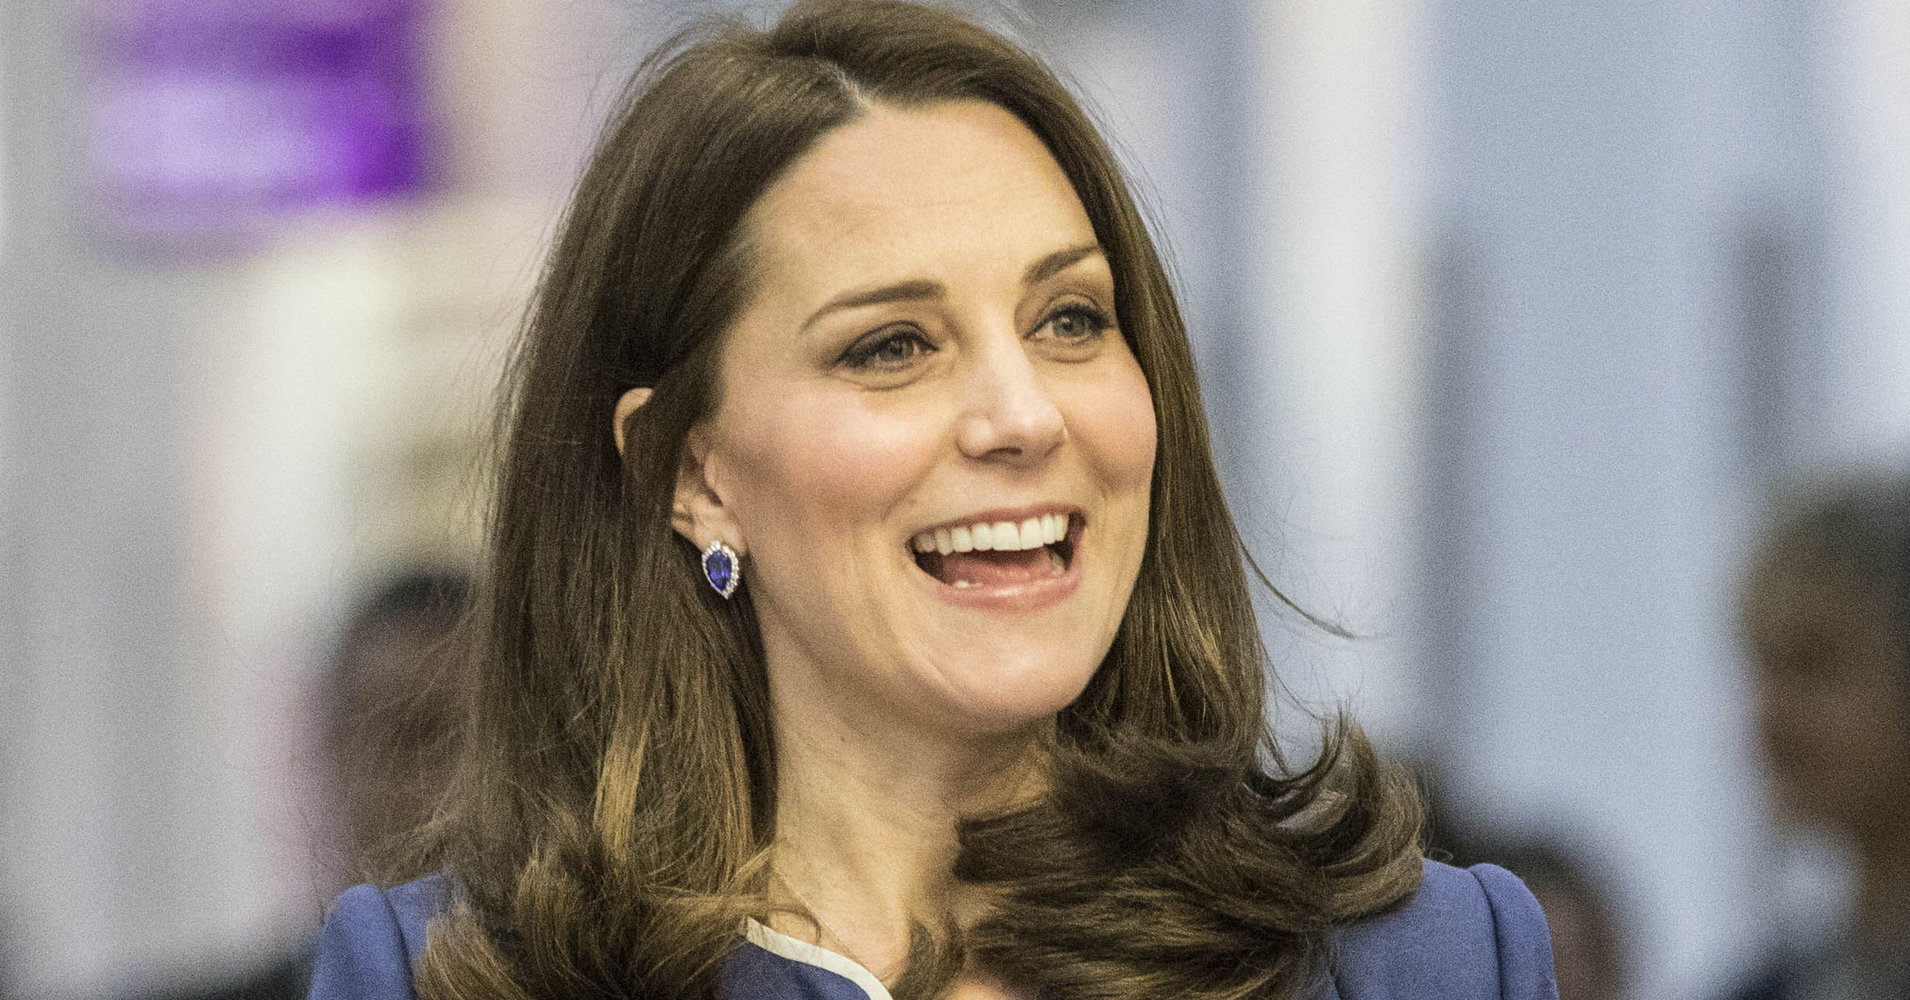 The Duchess Of Cambridge Jokes That Prince William Is In Denial Over 3rd Child